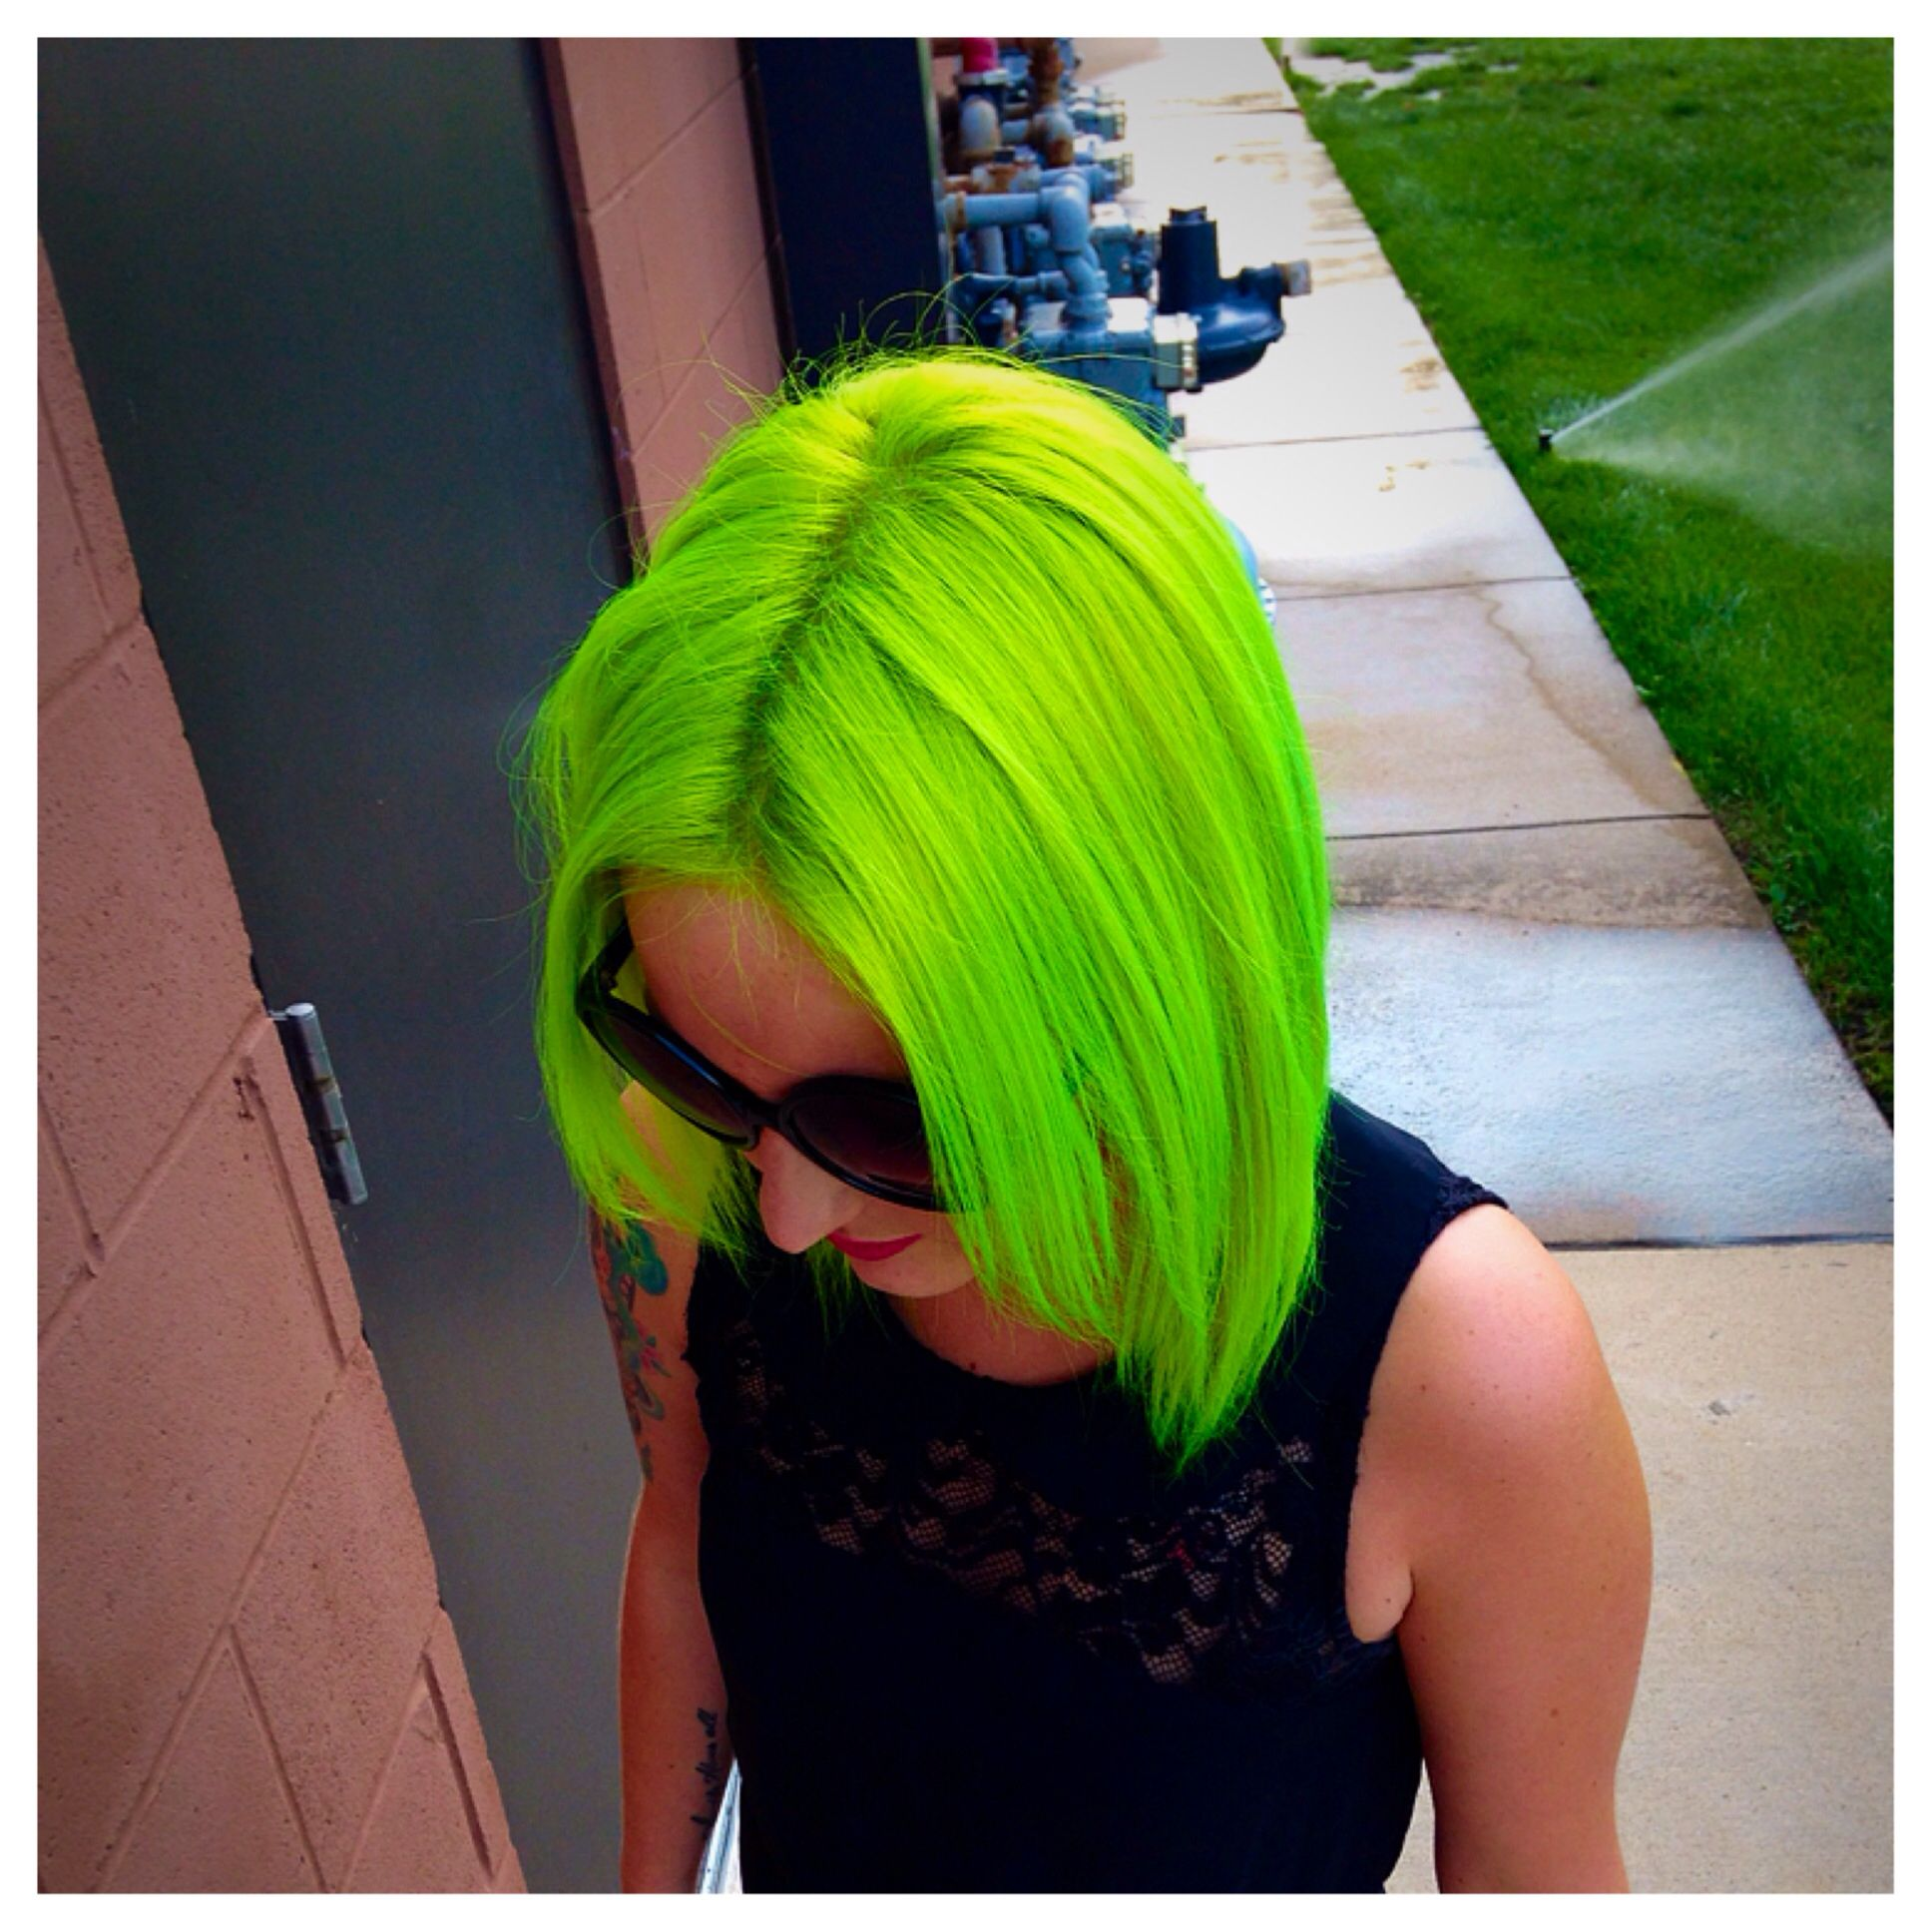 Neon pravana hair colors pinterest neon green hair and hair